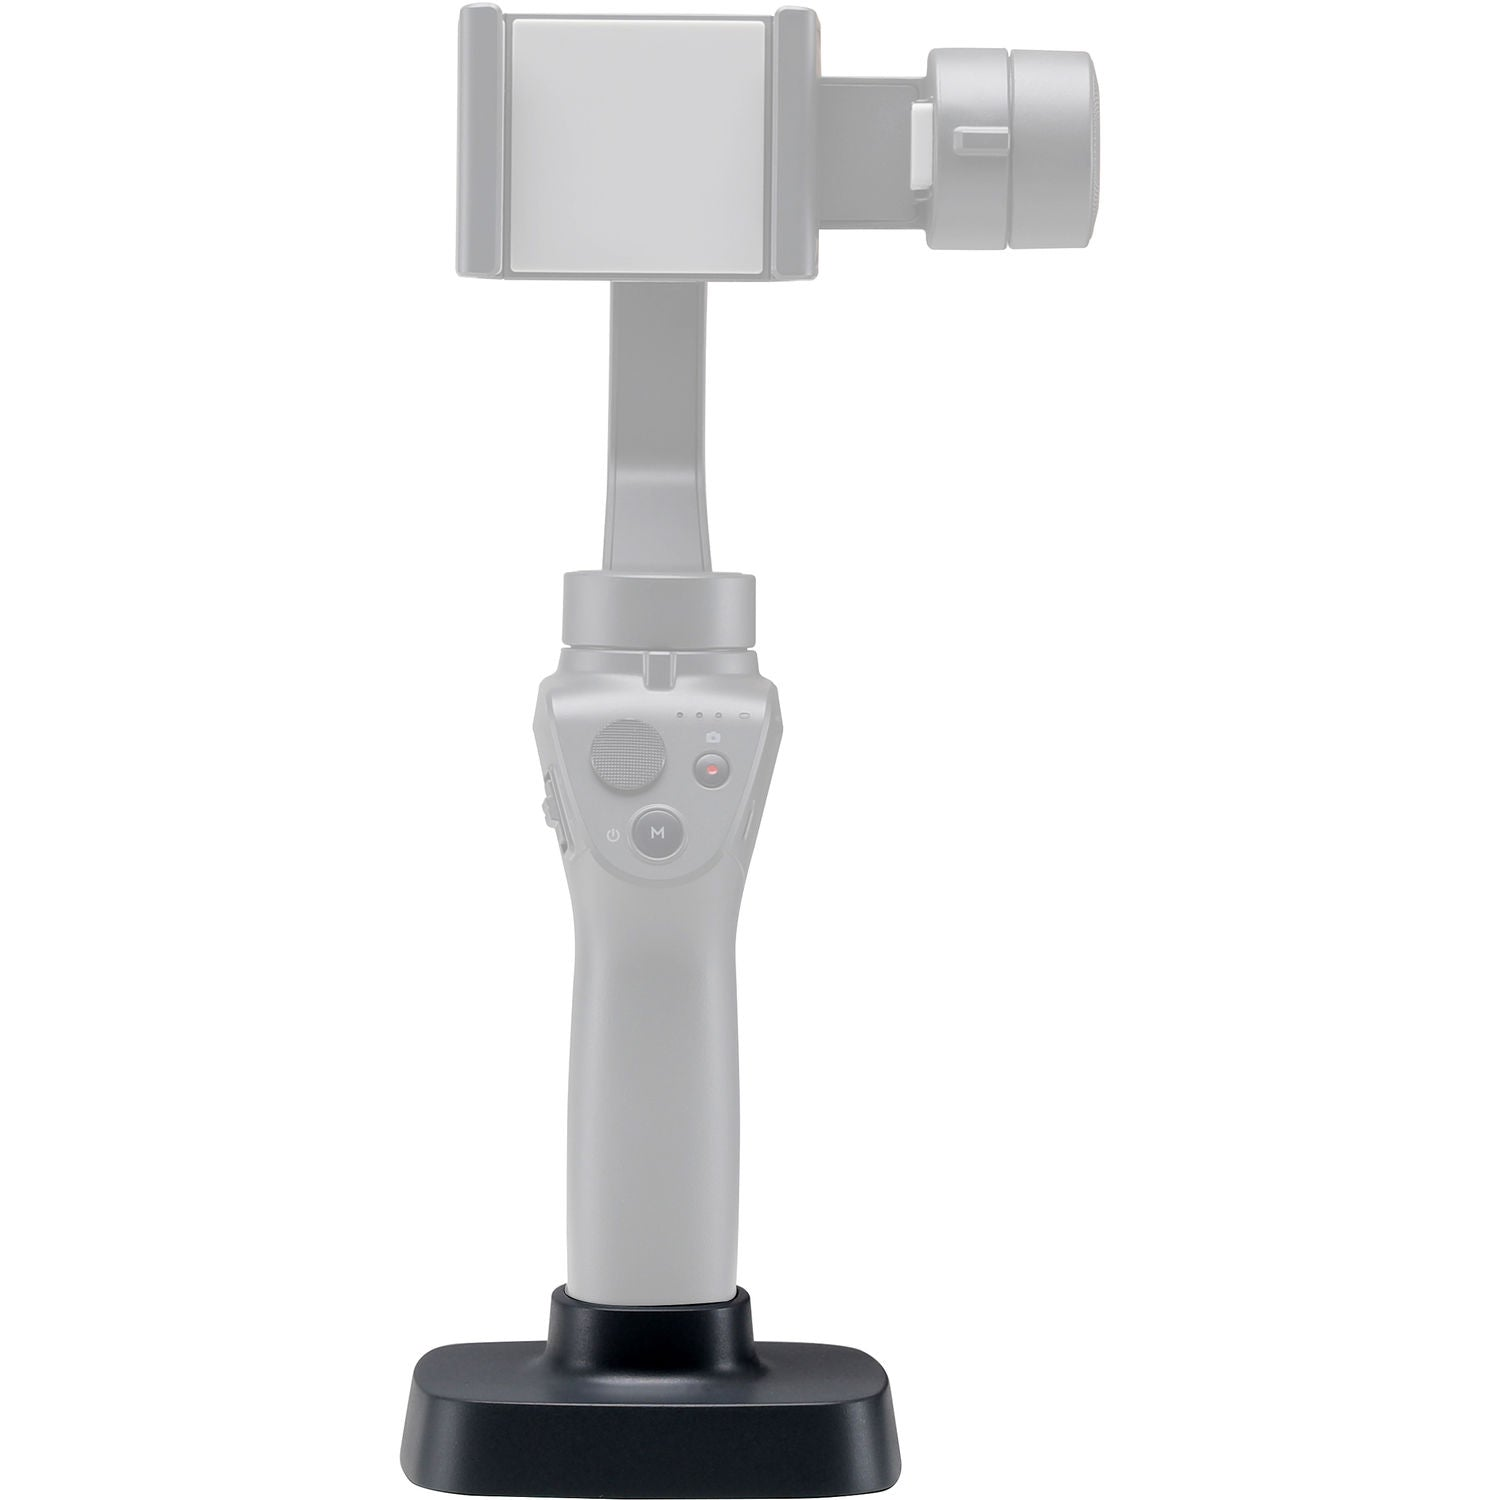 DJI Osmo Mobile 2 Base